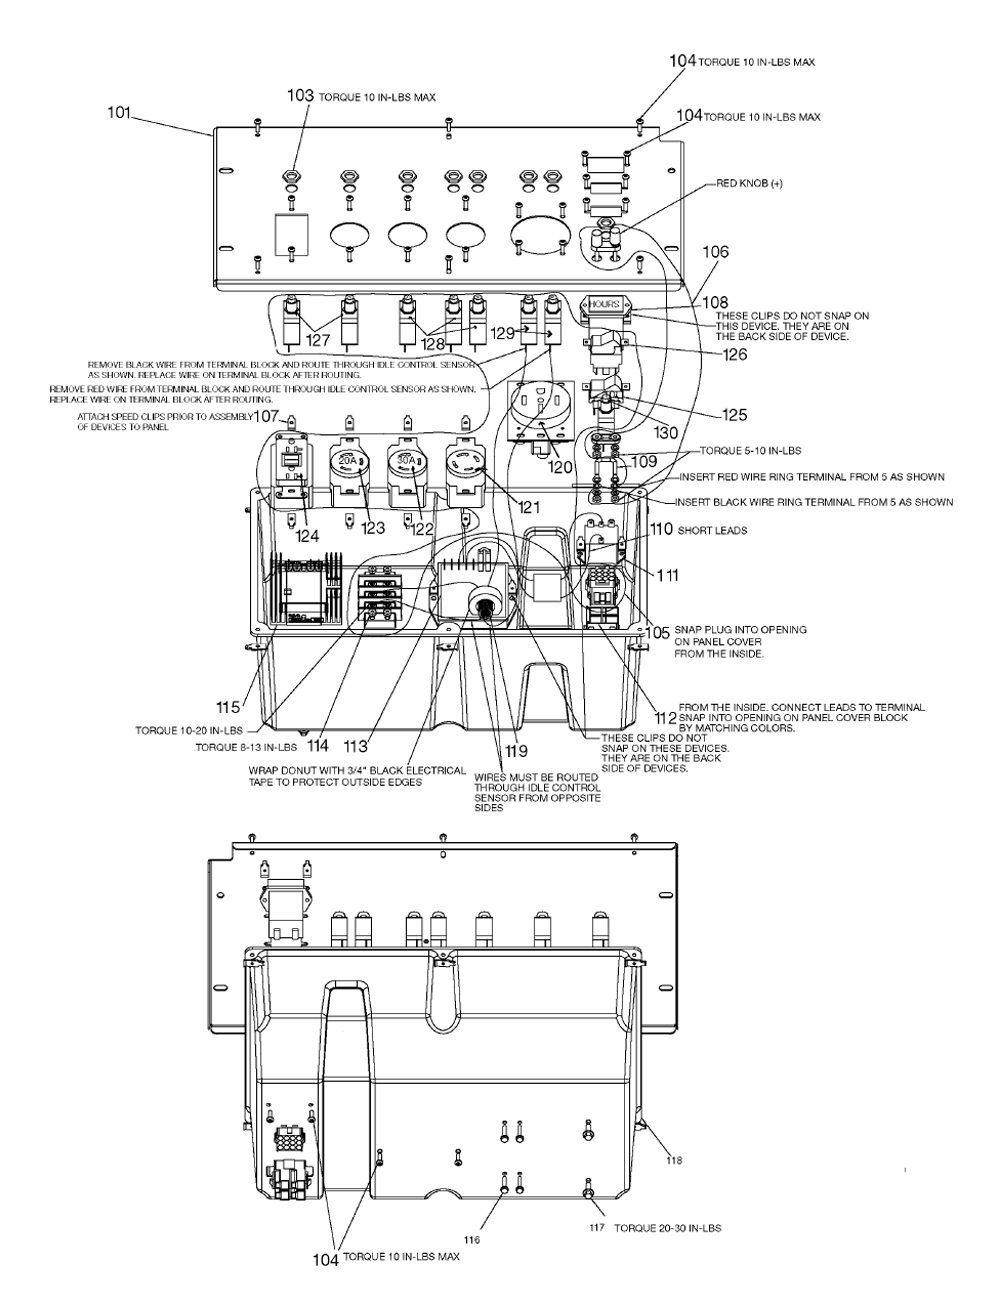 porter cable generator wiring diagram buy porter cable h1000 type 0 g 10000w 20hp honda replacement tool  buy porter cable h1000 type 0 g 10000w